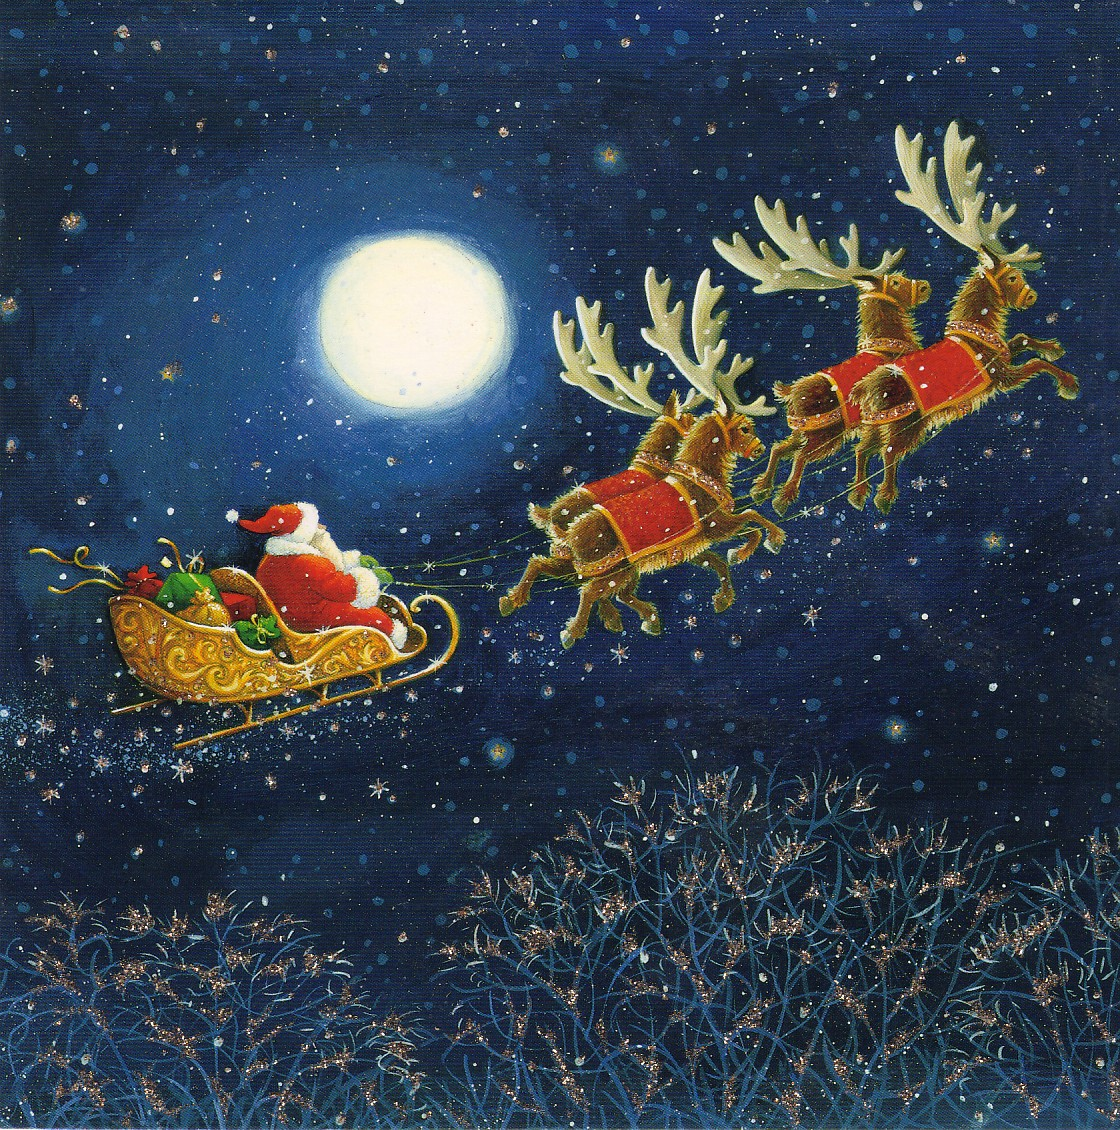 Santa Claus Flying In His Sleigh Santa claus still busy on his